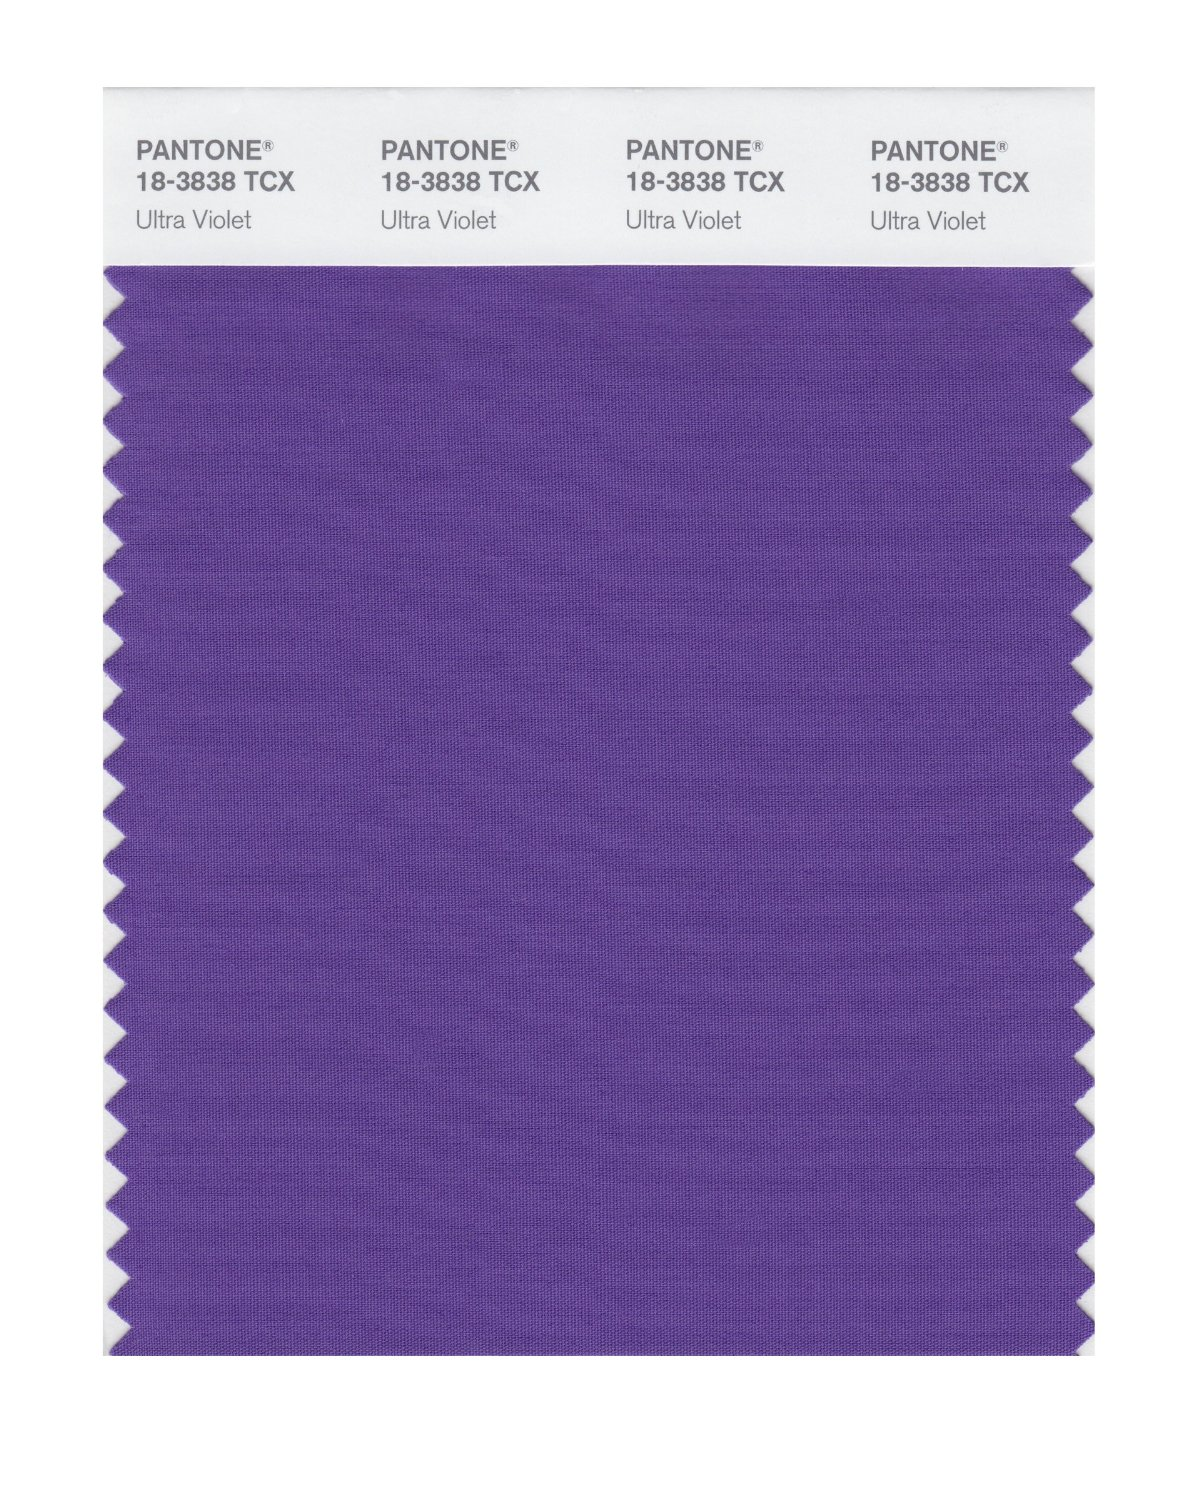 Ultra Violet Pantone Buy Pantone Smart Swatch 18 3838 Ultra Violet